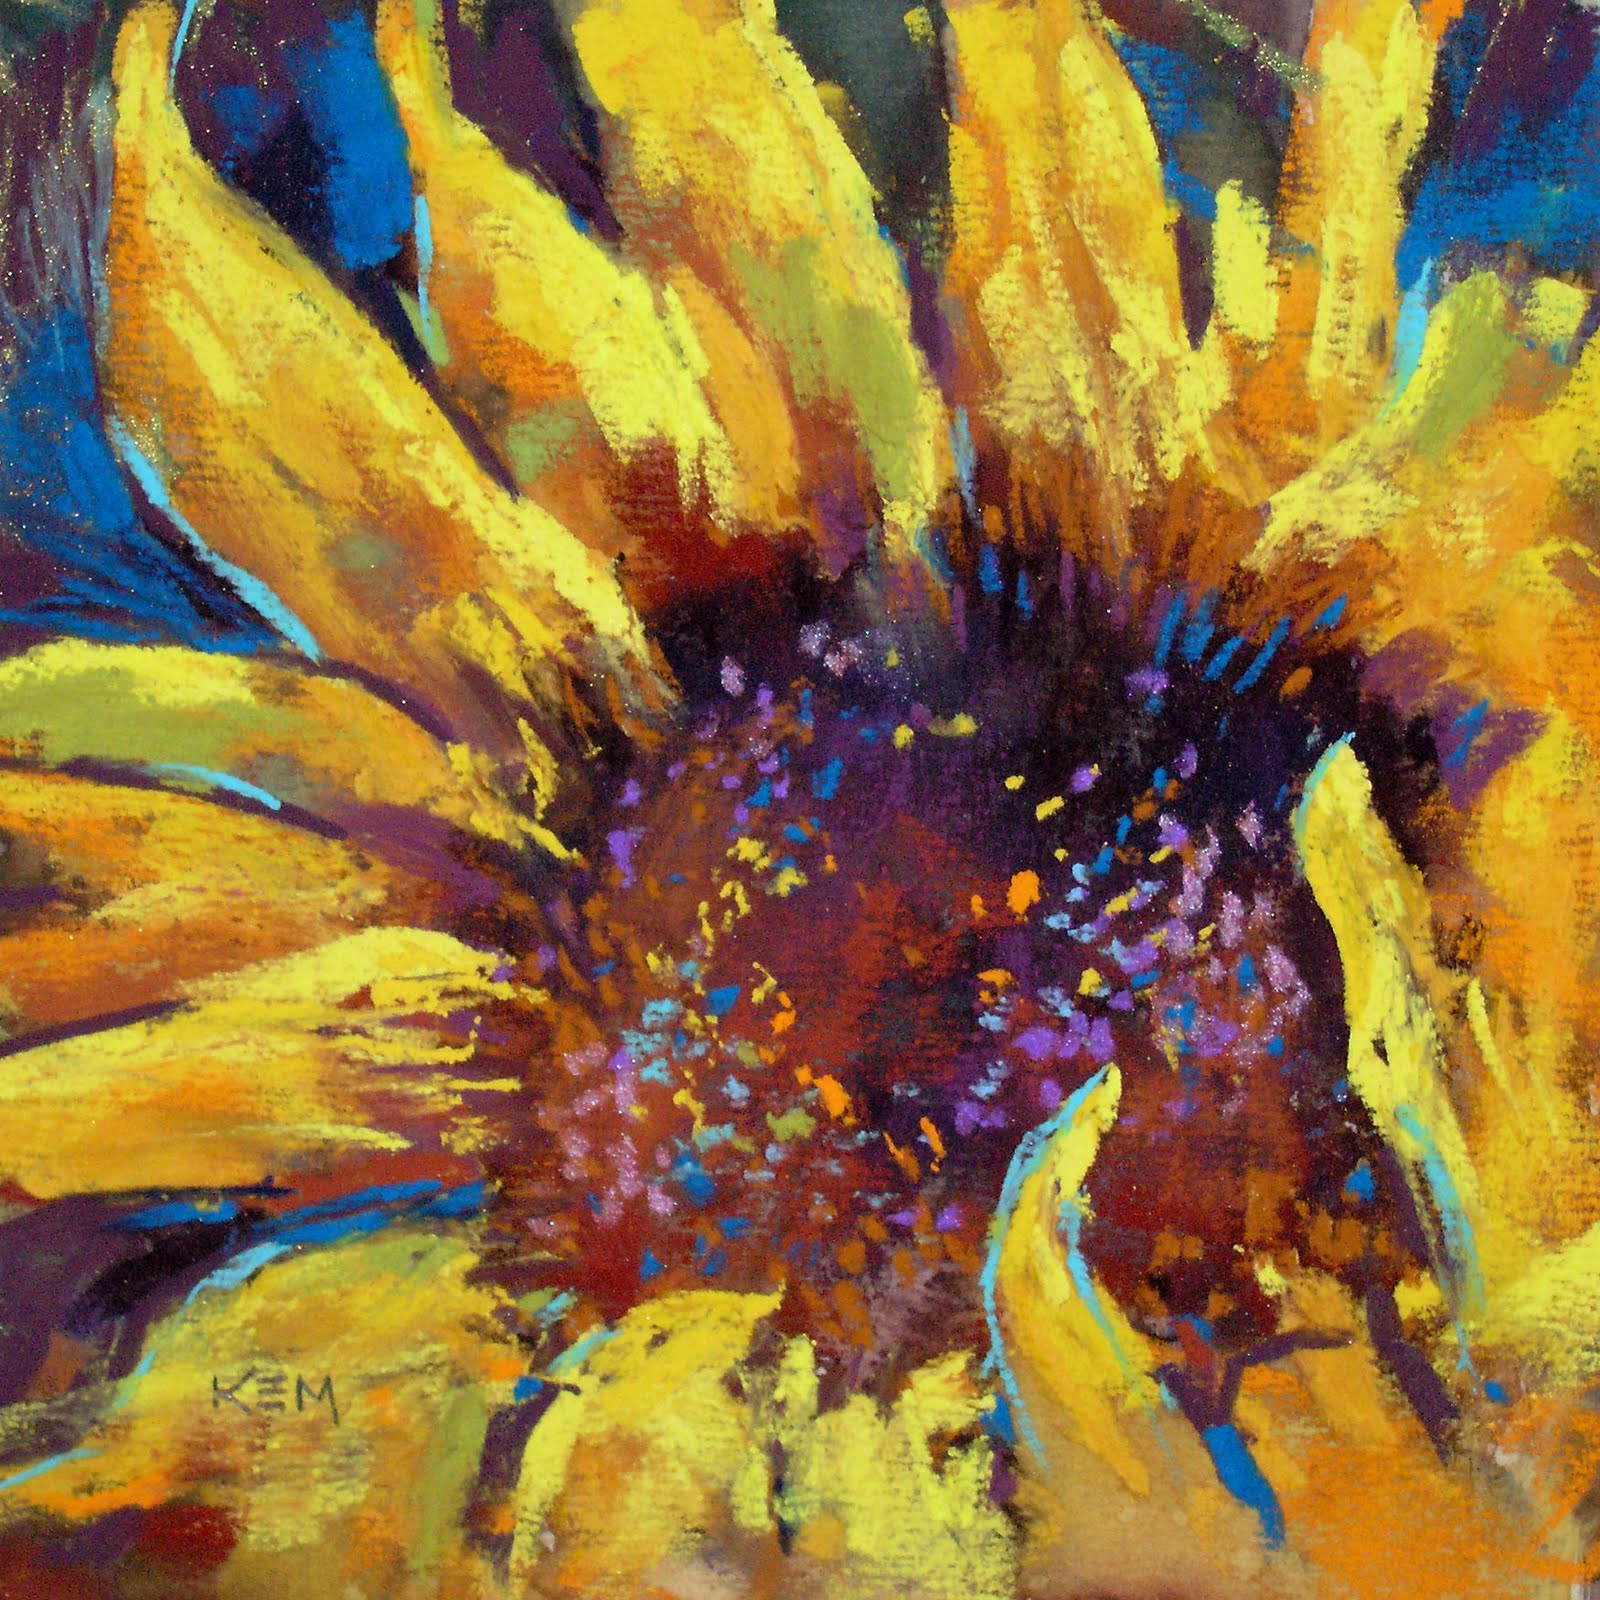 A Sunflower A Day: Sunflower Painting #1 sold